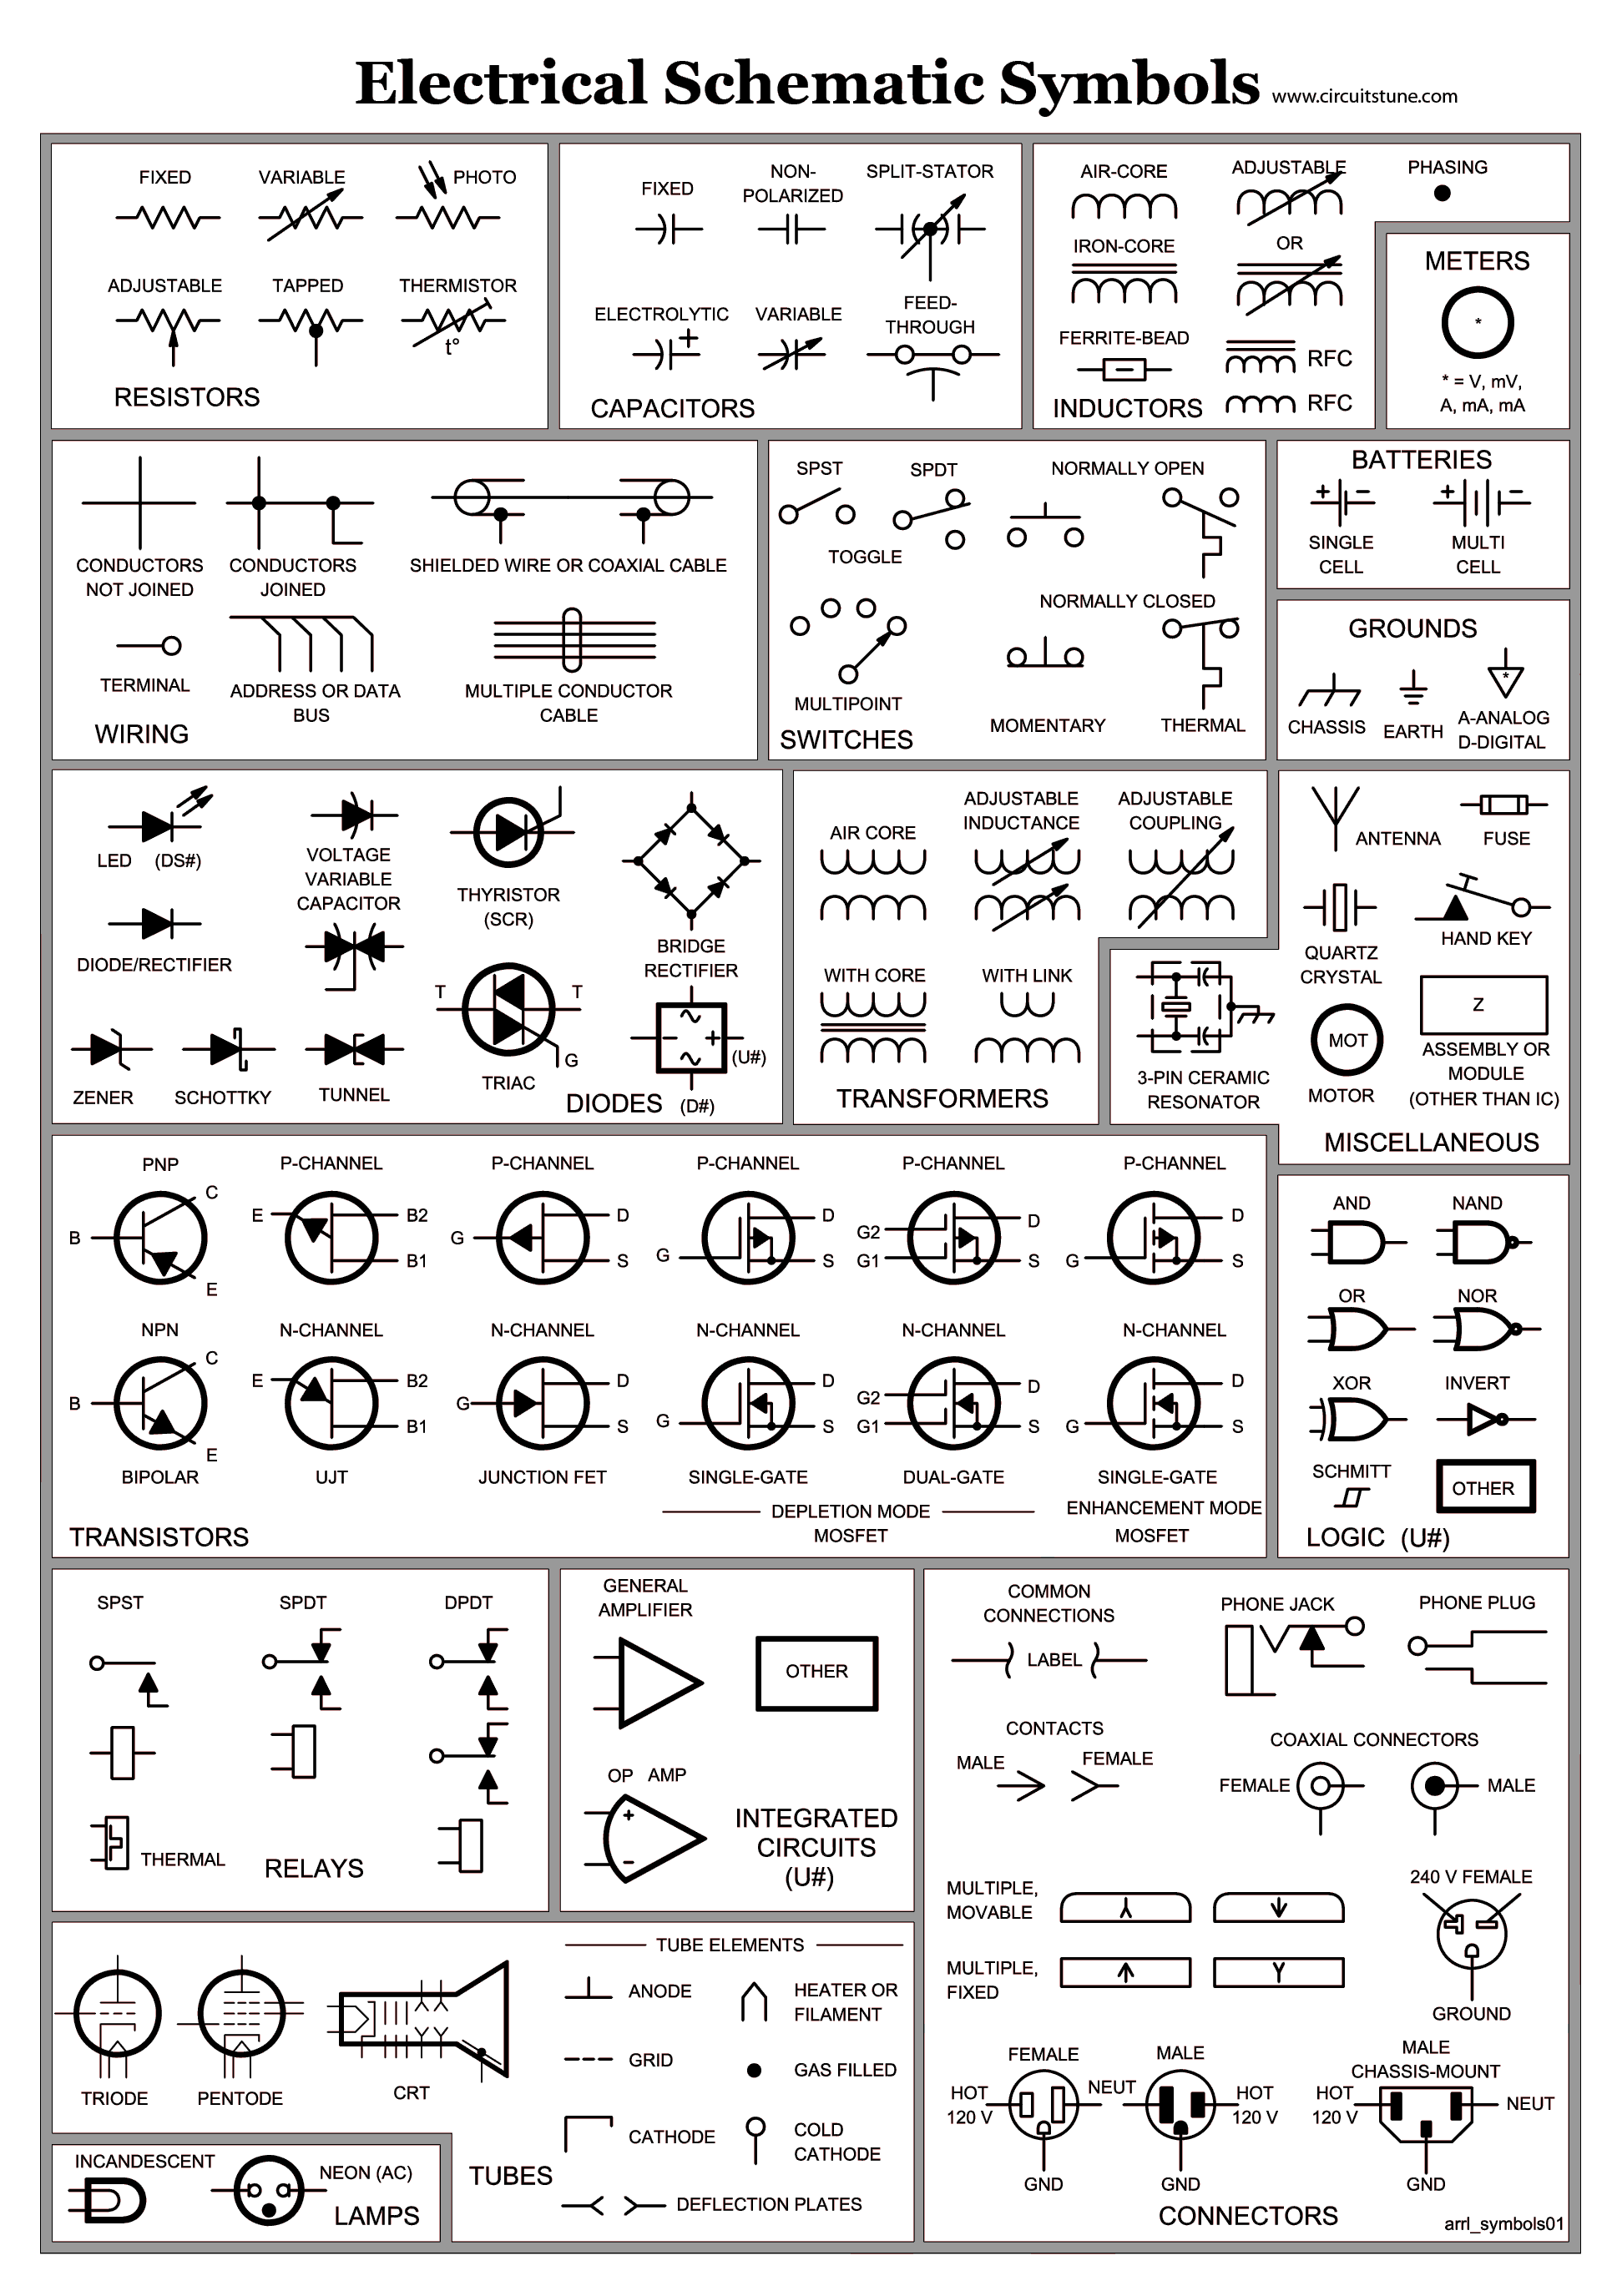 Circuit Diagram Symbols - Wiring Diagram Work on